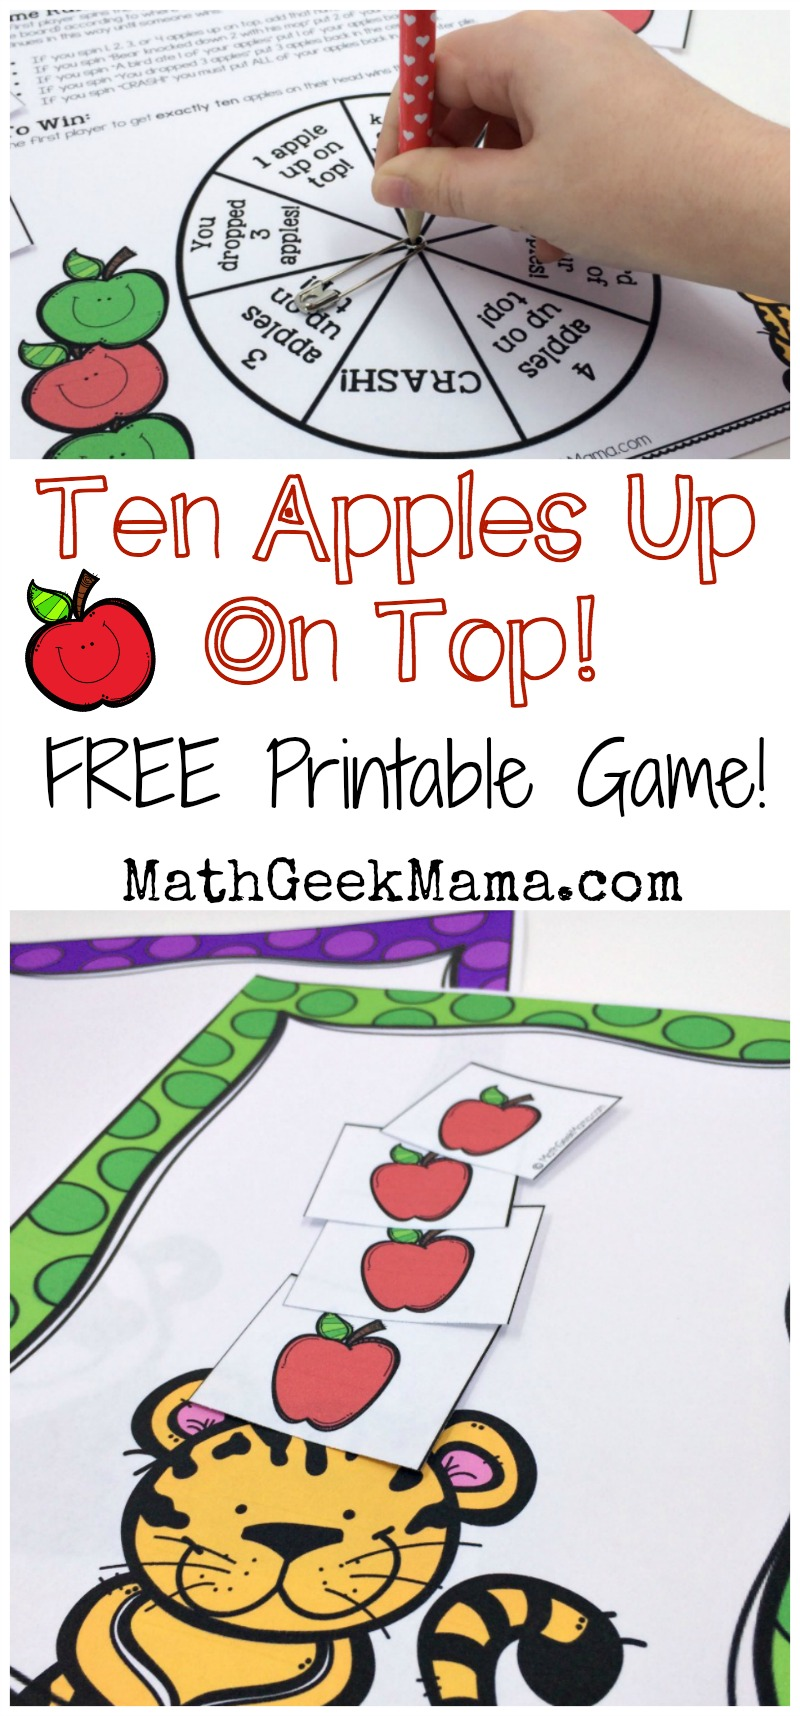 "This super cute printable math game is perfect to play with the book, ""Ten Apples Up On Top!"" Kids can practice counting and adding and subtracting to 10! Plus, it's a great way to combine math and reading!"